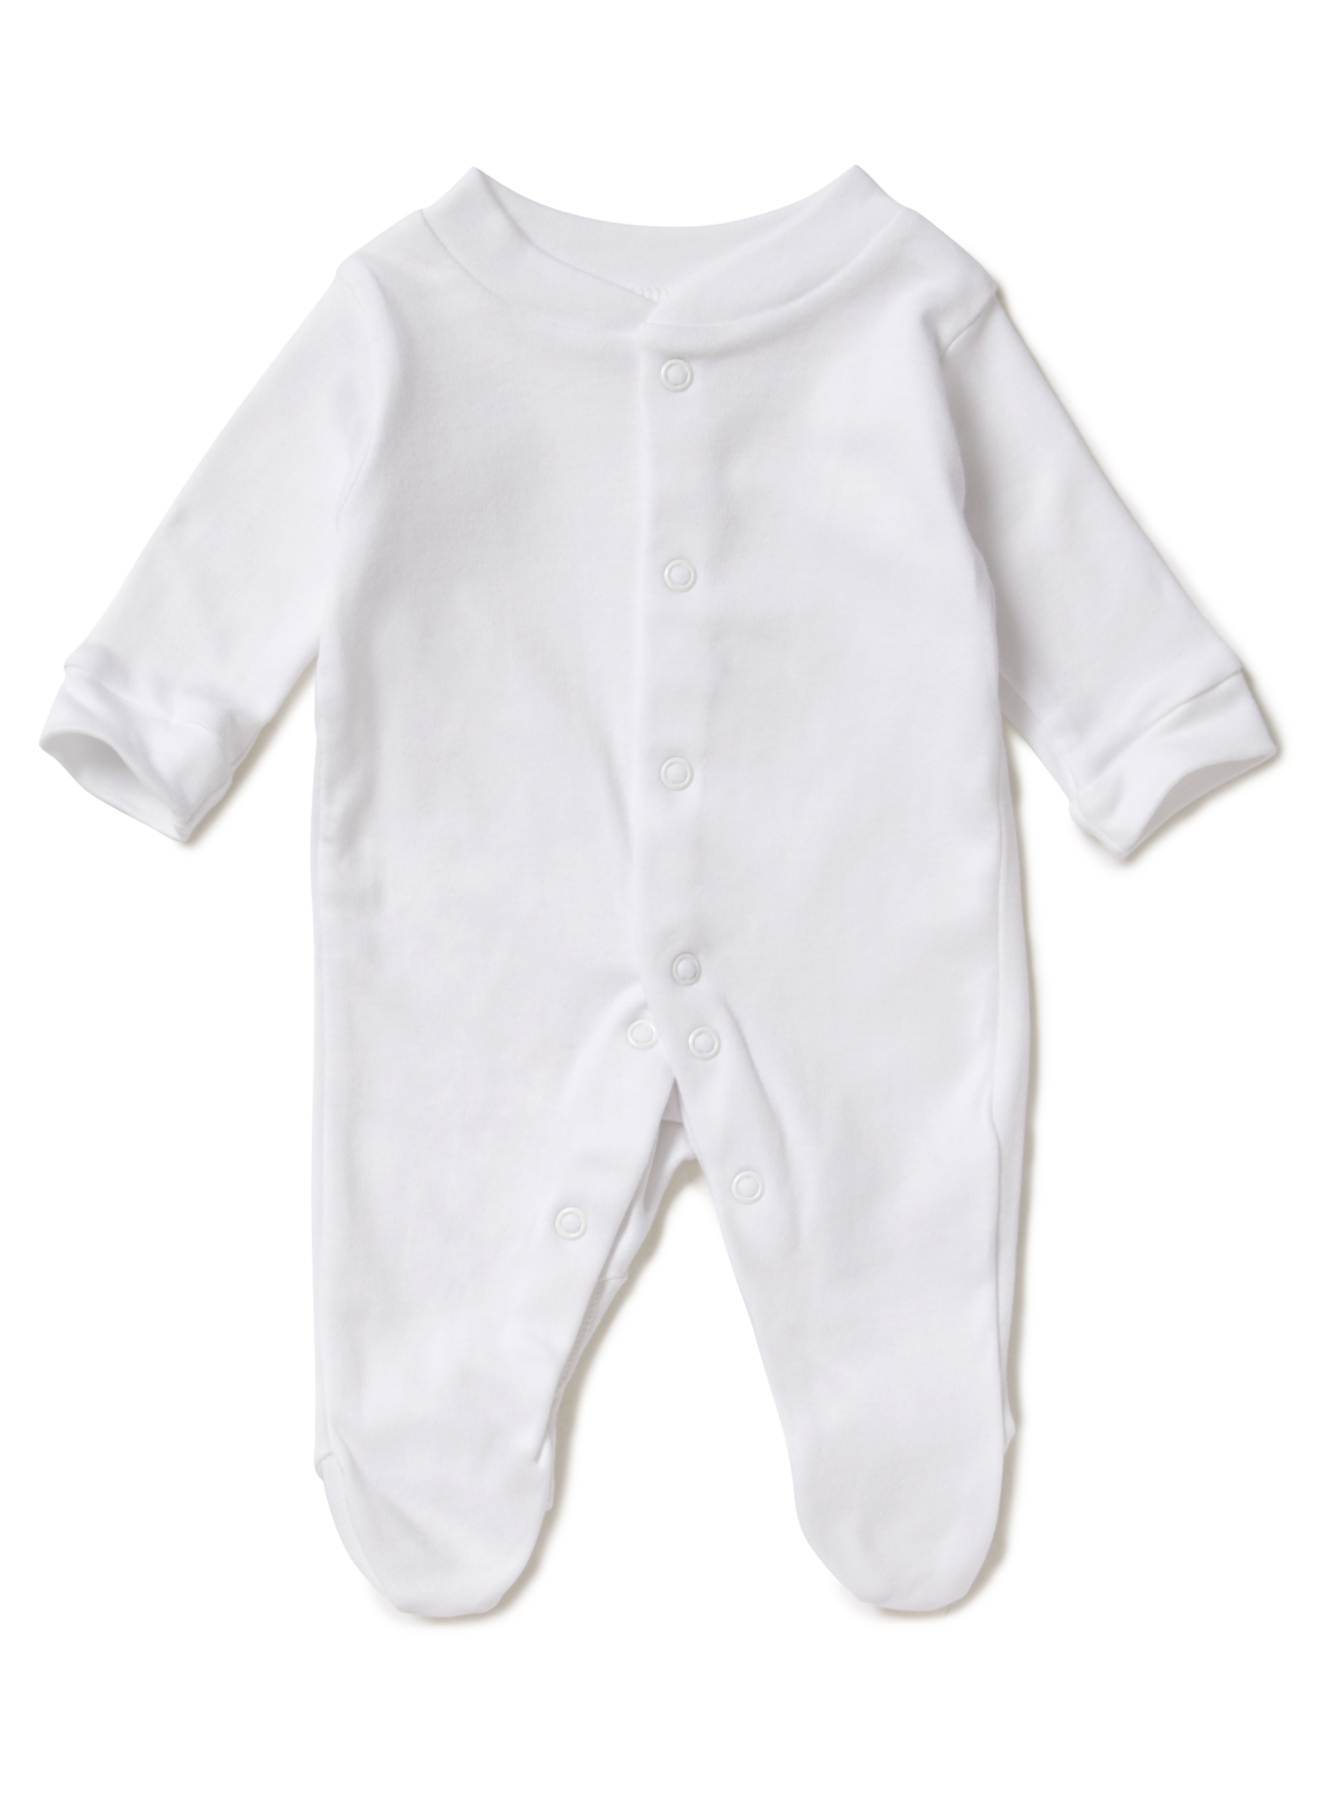 3 Pack Sleepsuits Baby